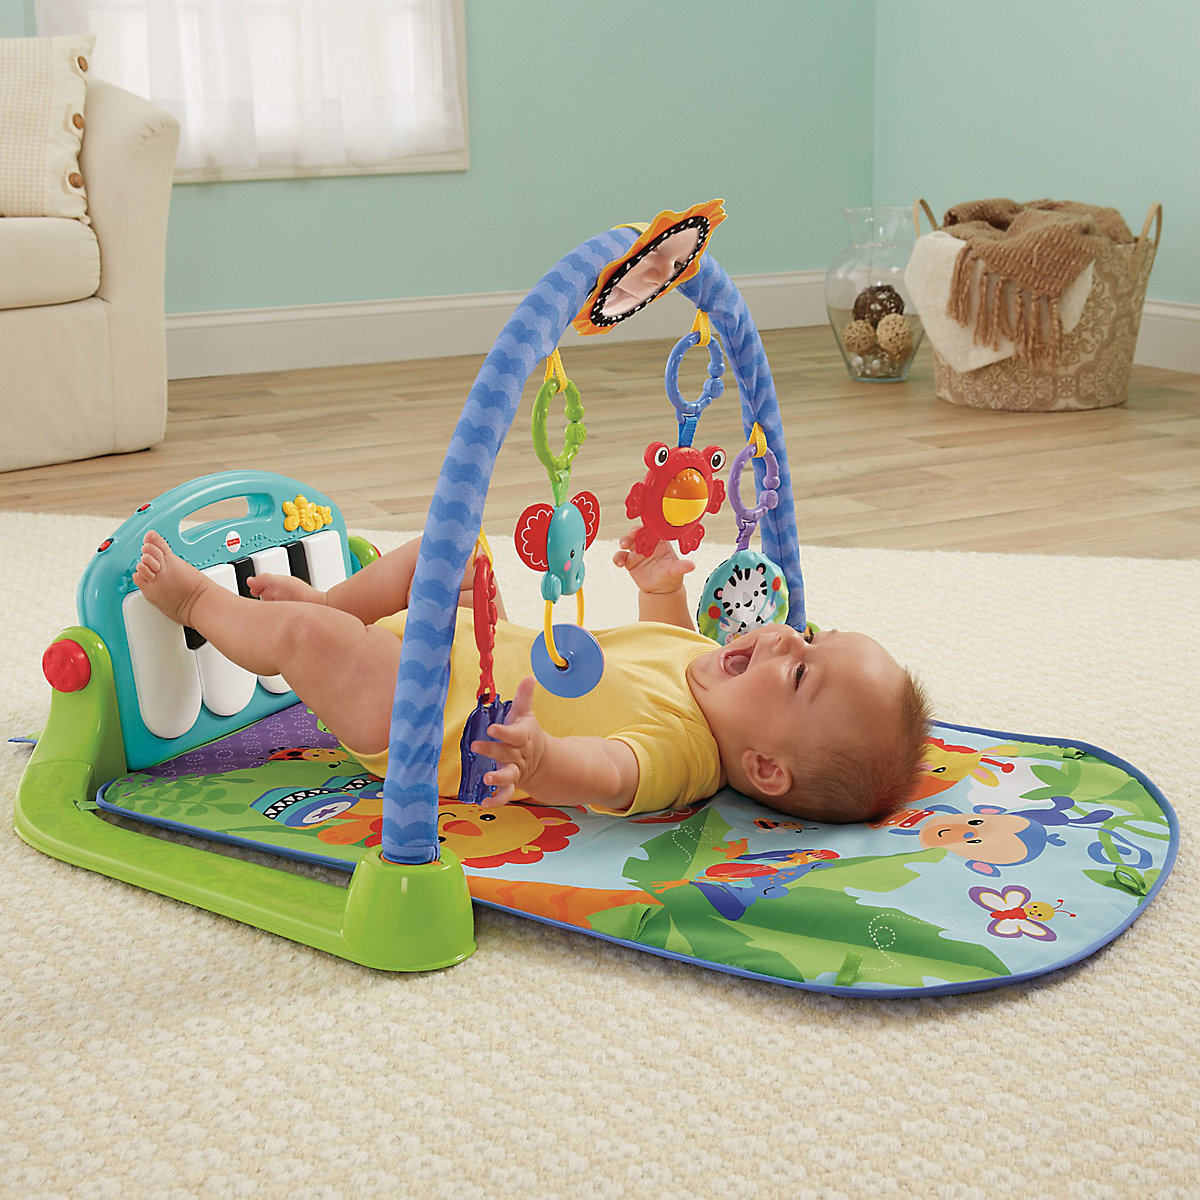 Play Mats FISHER-PRICE 3399157 Play Carpet Mat Developmental Children Educational Busy Toys for boys girls sassy seat doorway jumper 5 toys with musical play mat